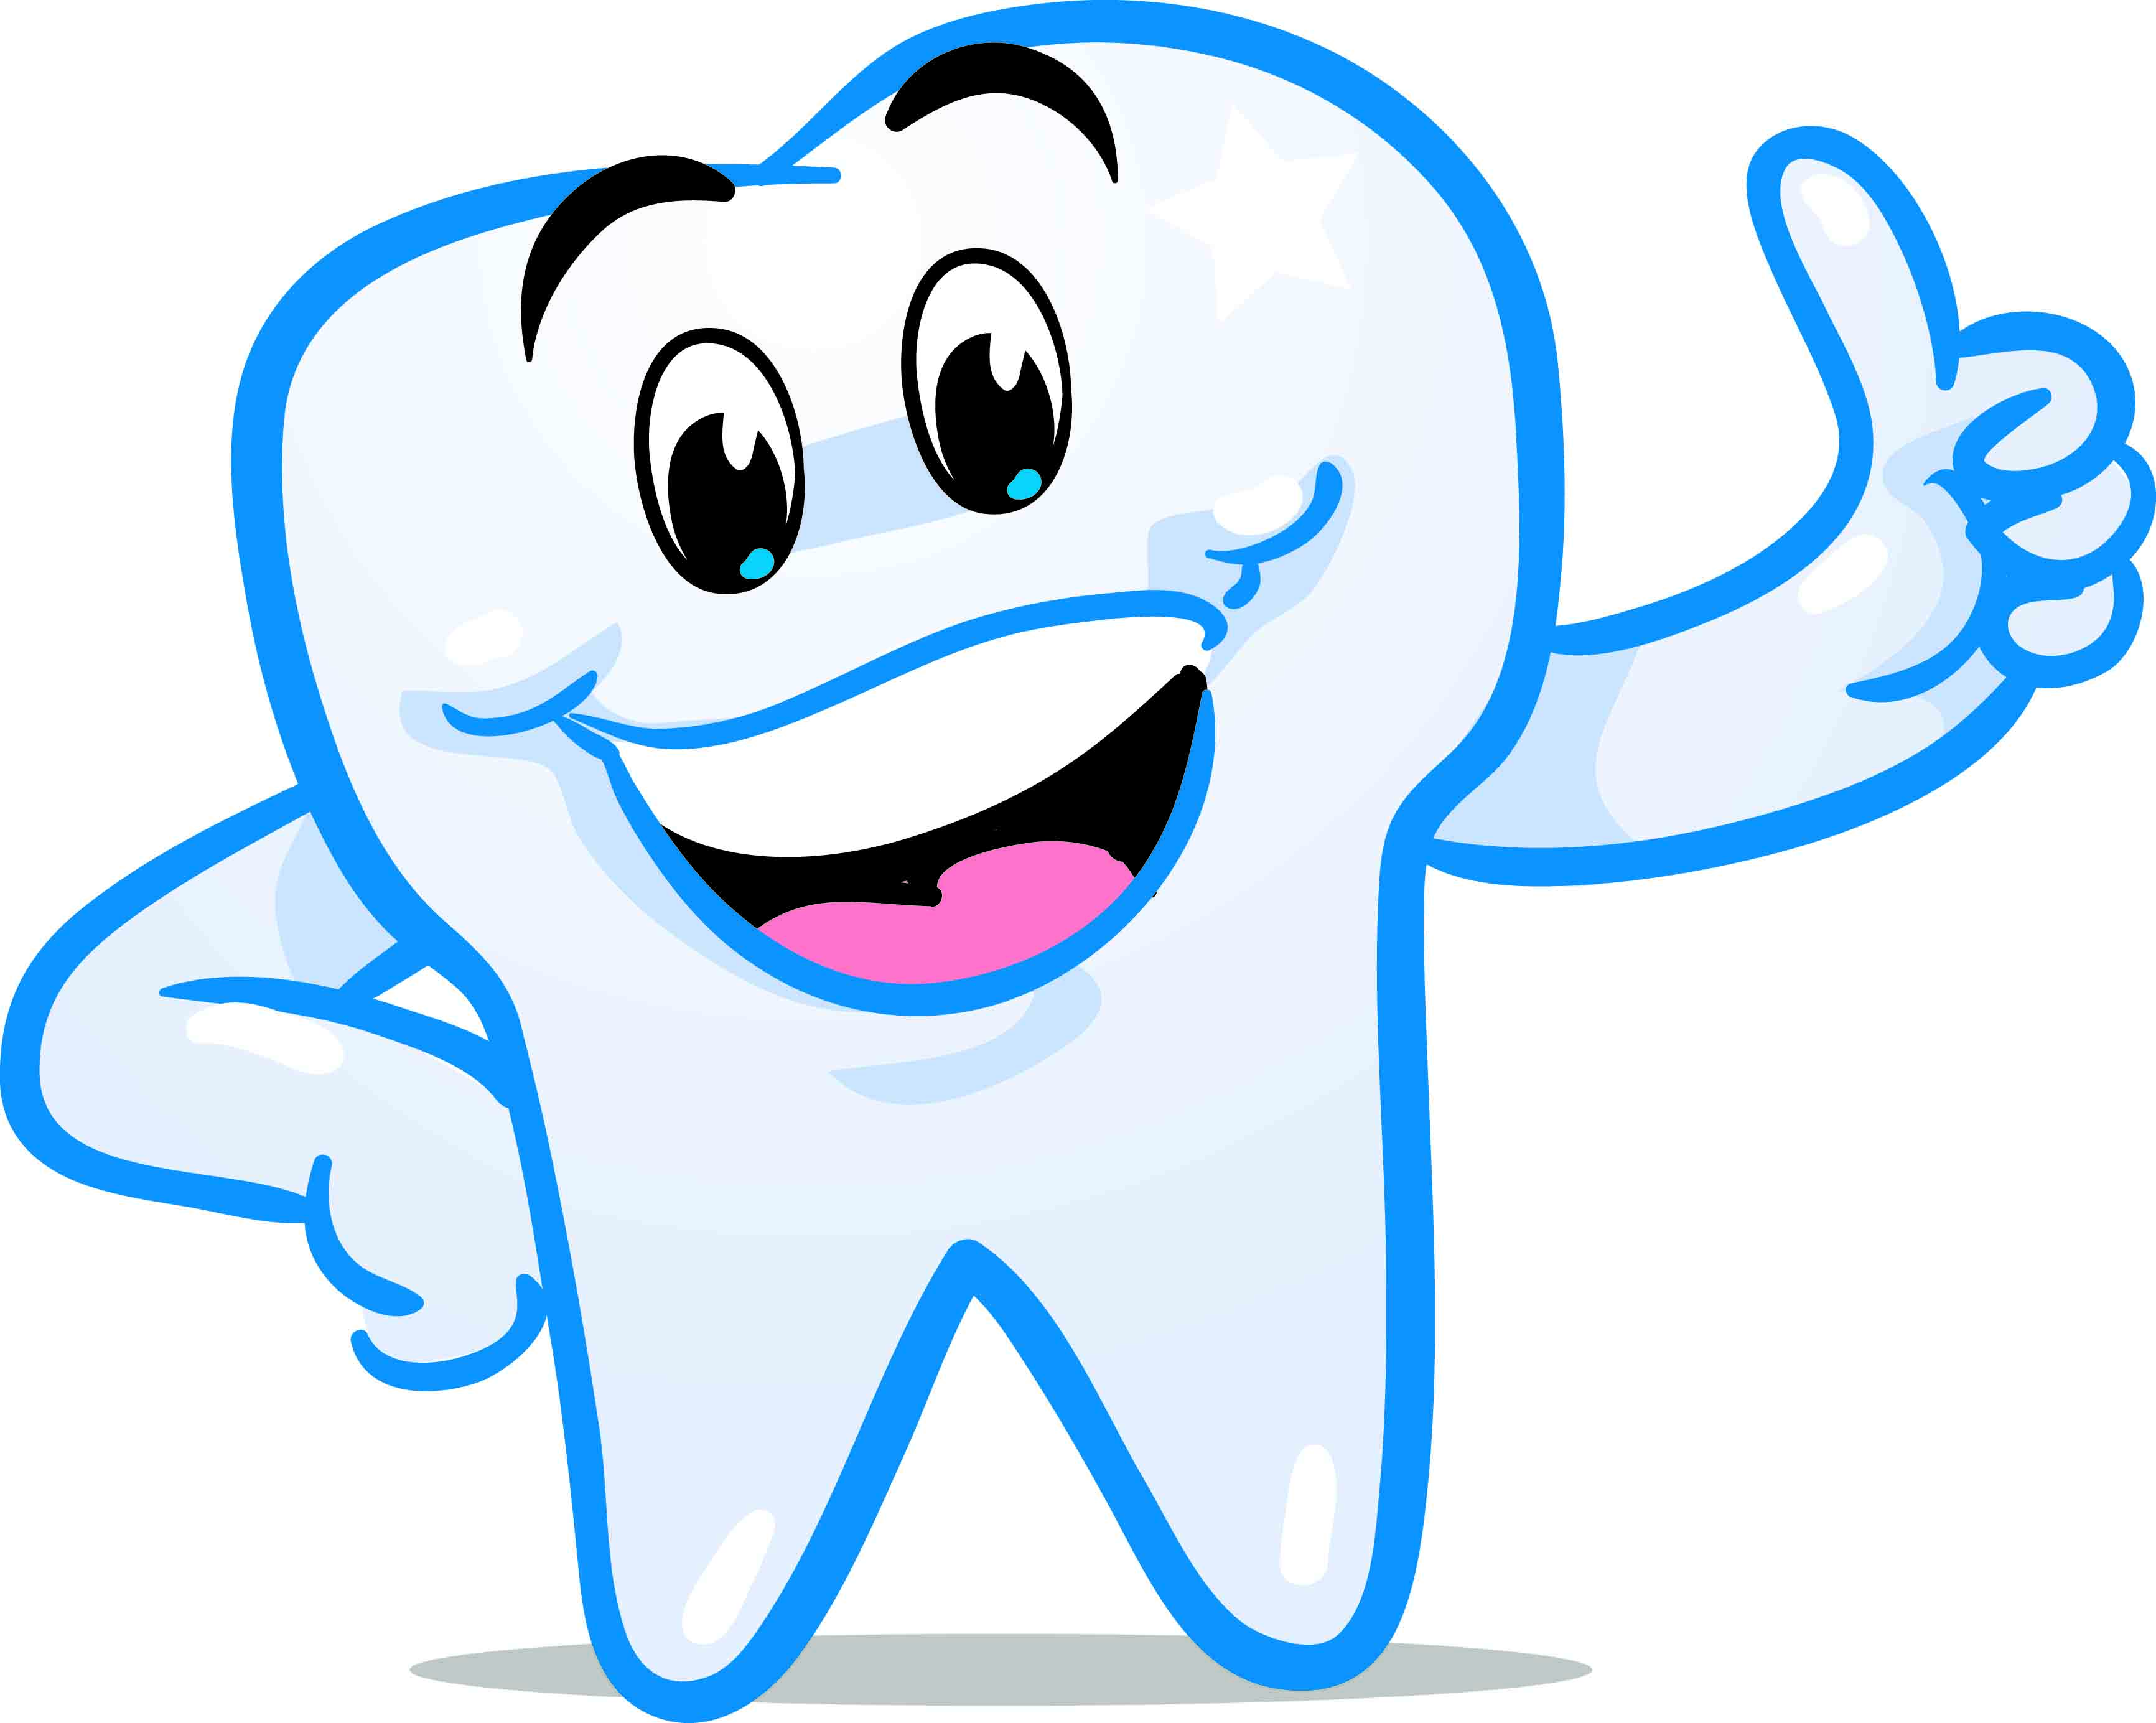 Dentist clipart. Big smile with teeth